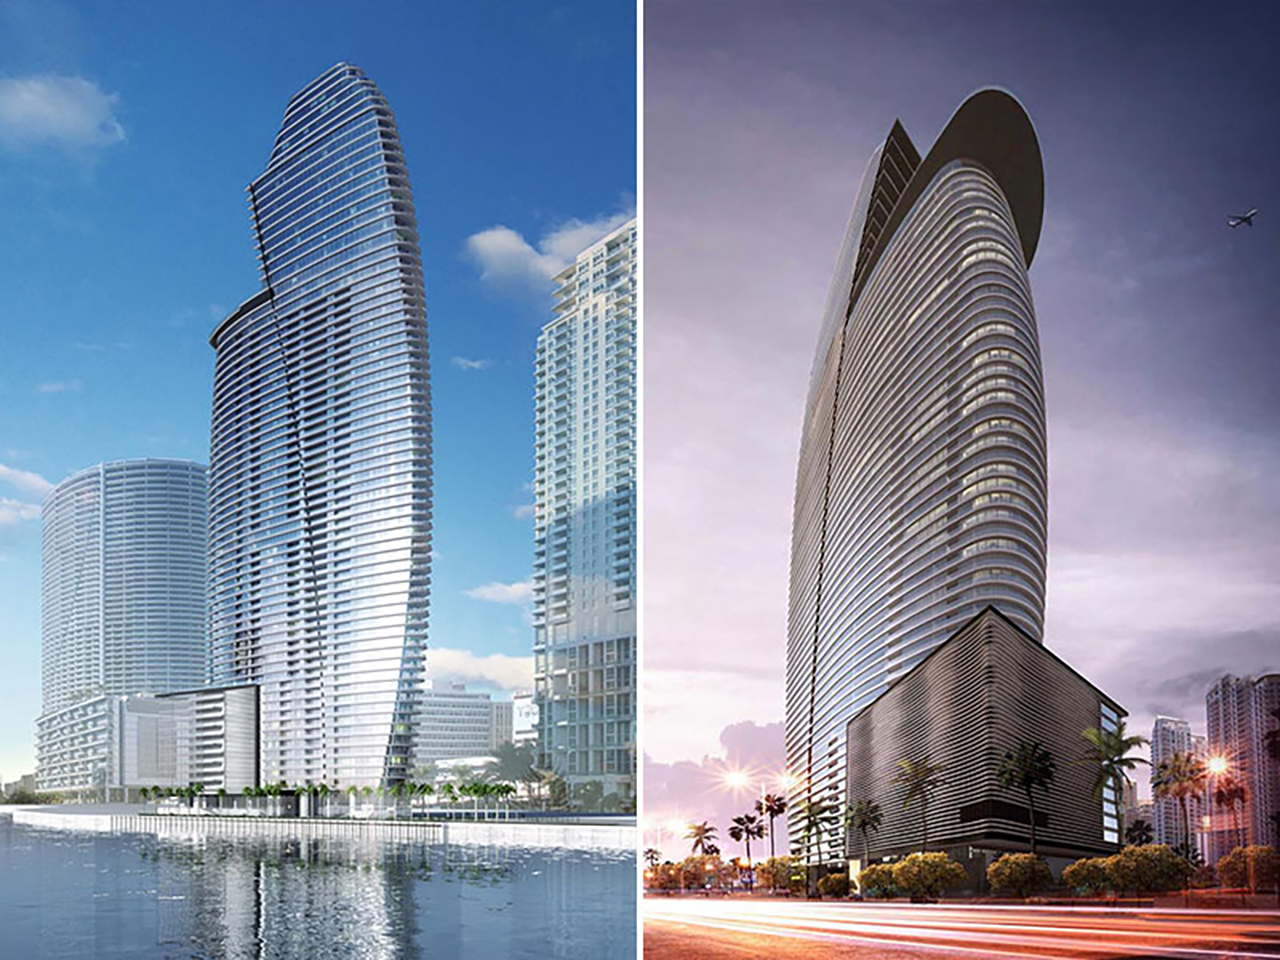 Coming soon: Aston Martin's first real estate project in Miami